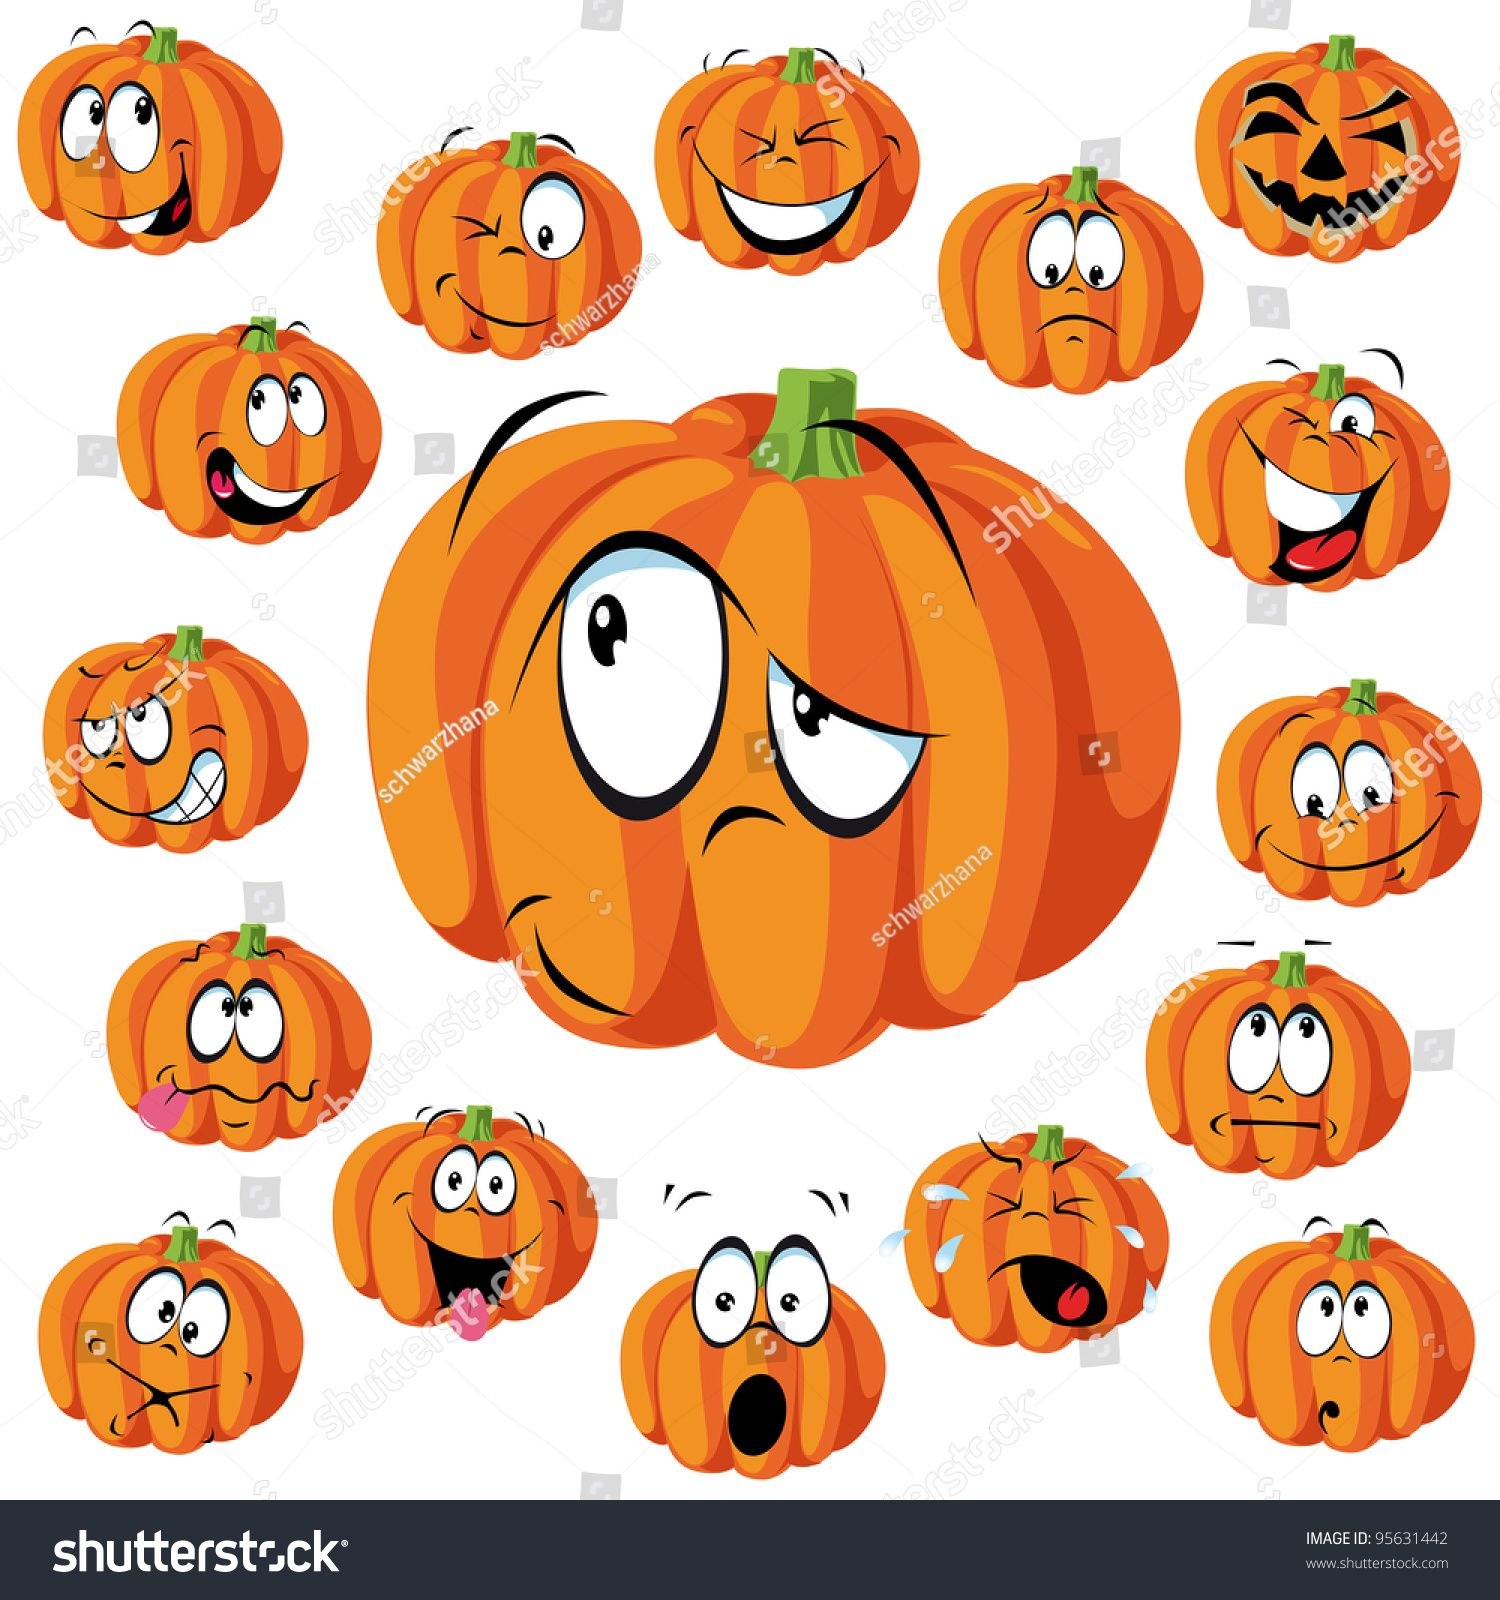 Pumpkin Cartoon With Many Expressions Halloween Cartoons Pumpkin Drawing Pumpkin Faces